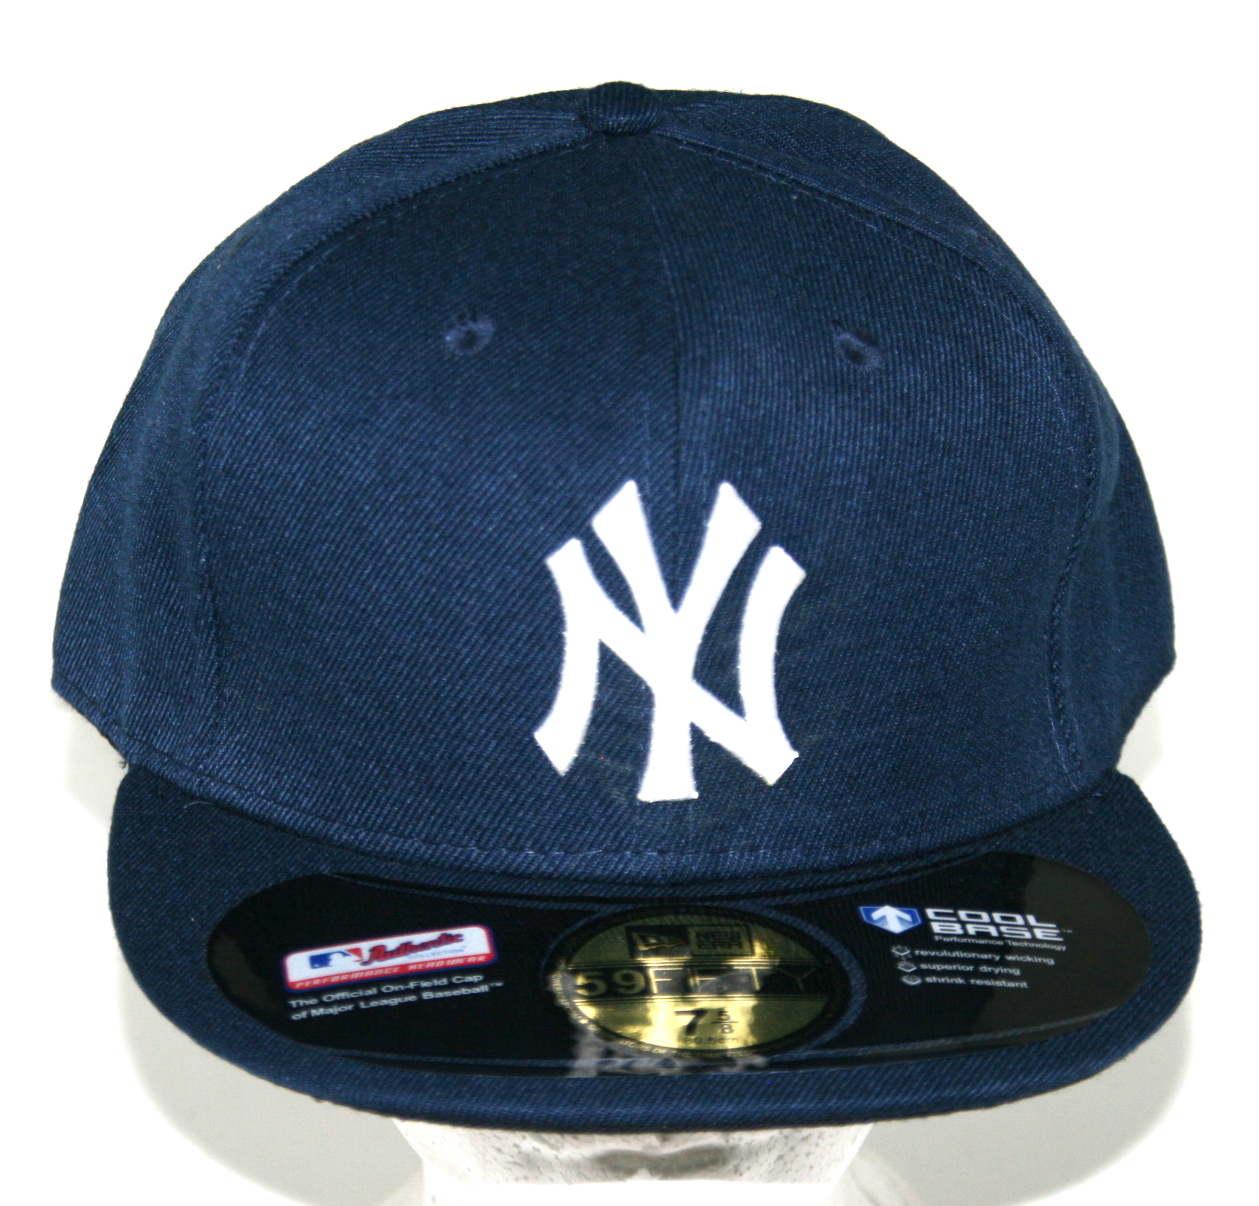 Warehouse Sale. New New York Yankees Hat Size 91fefe84a11